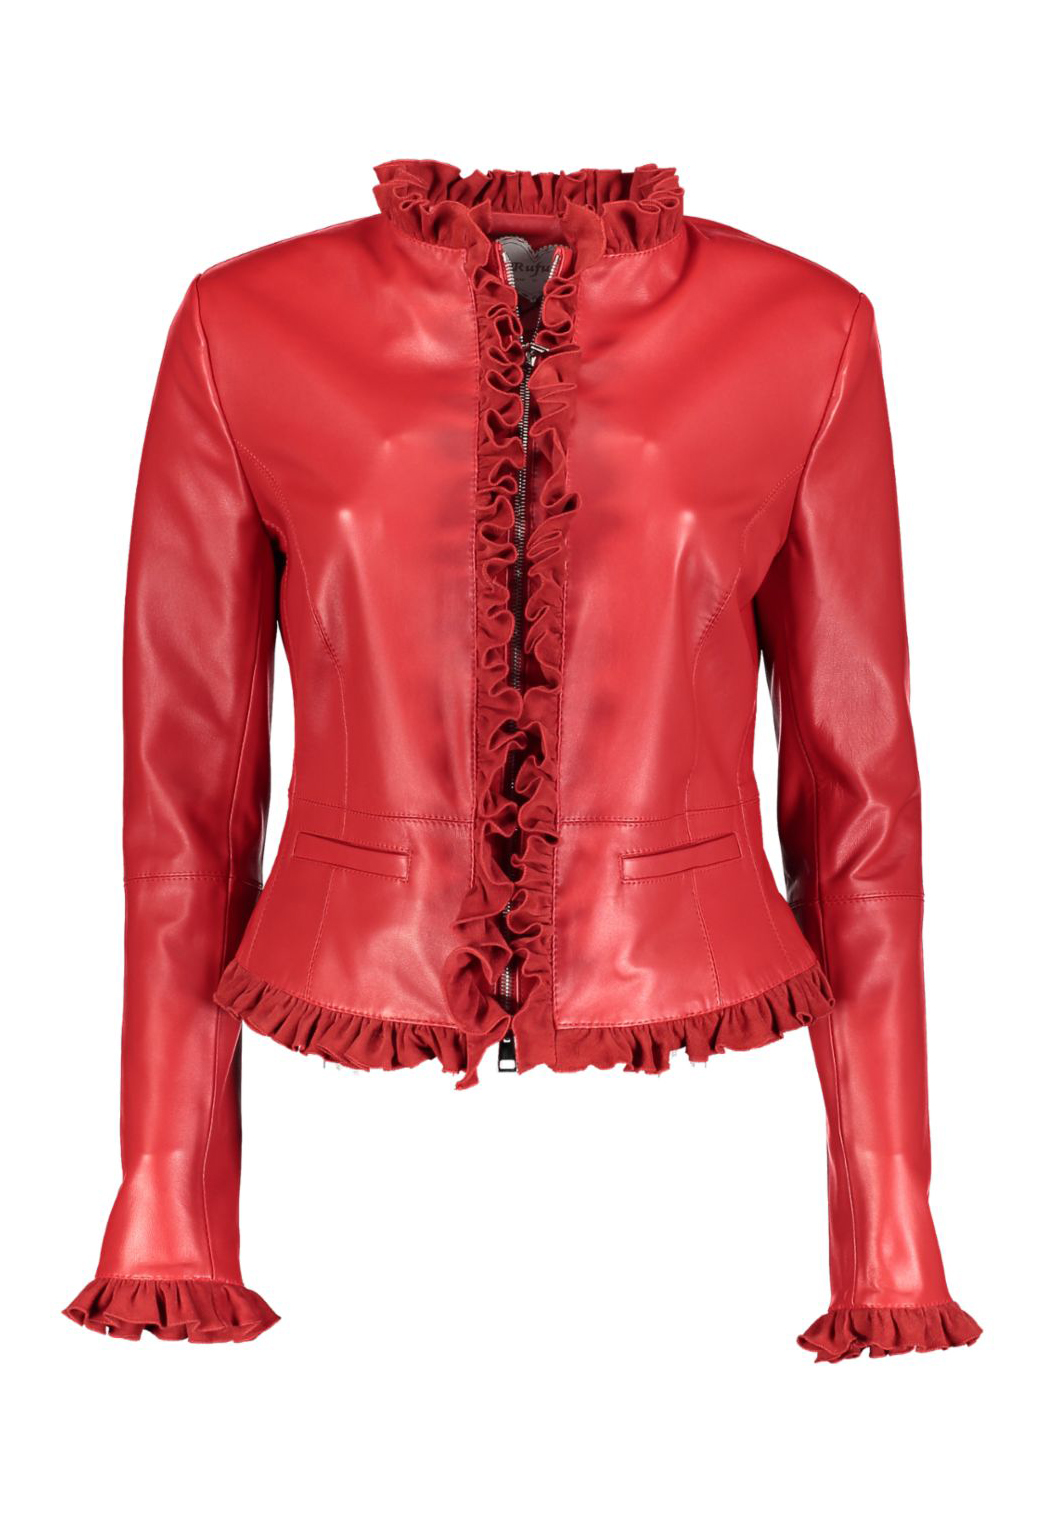 red leather &suede _Front_JPG2000x2000Fixed